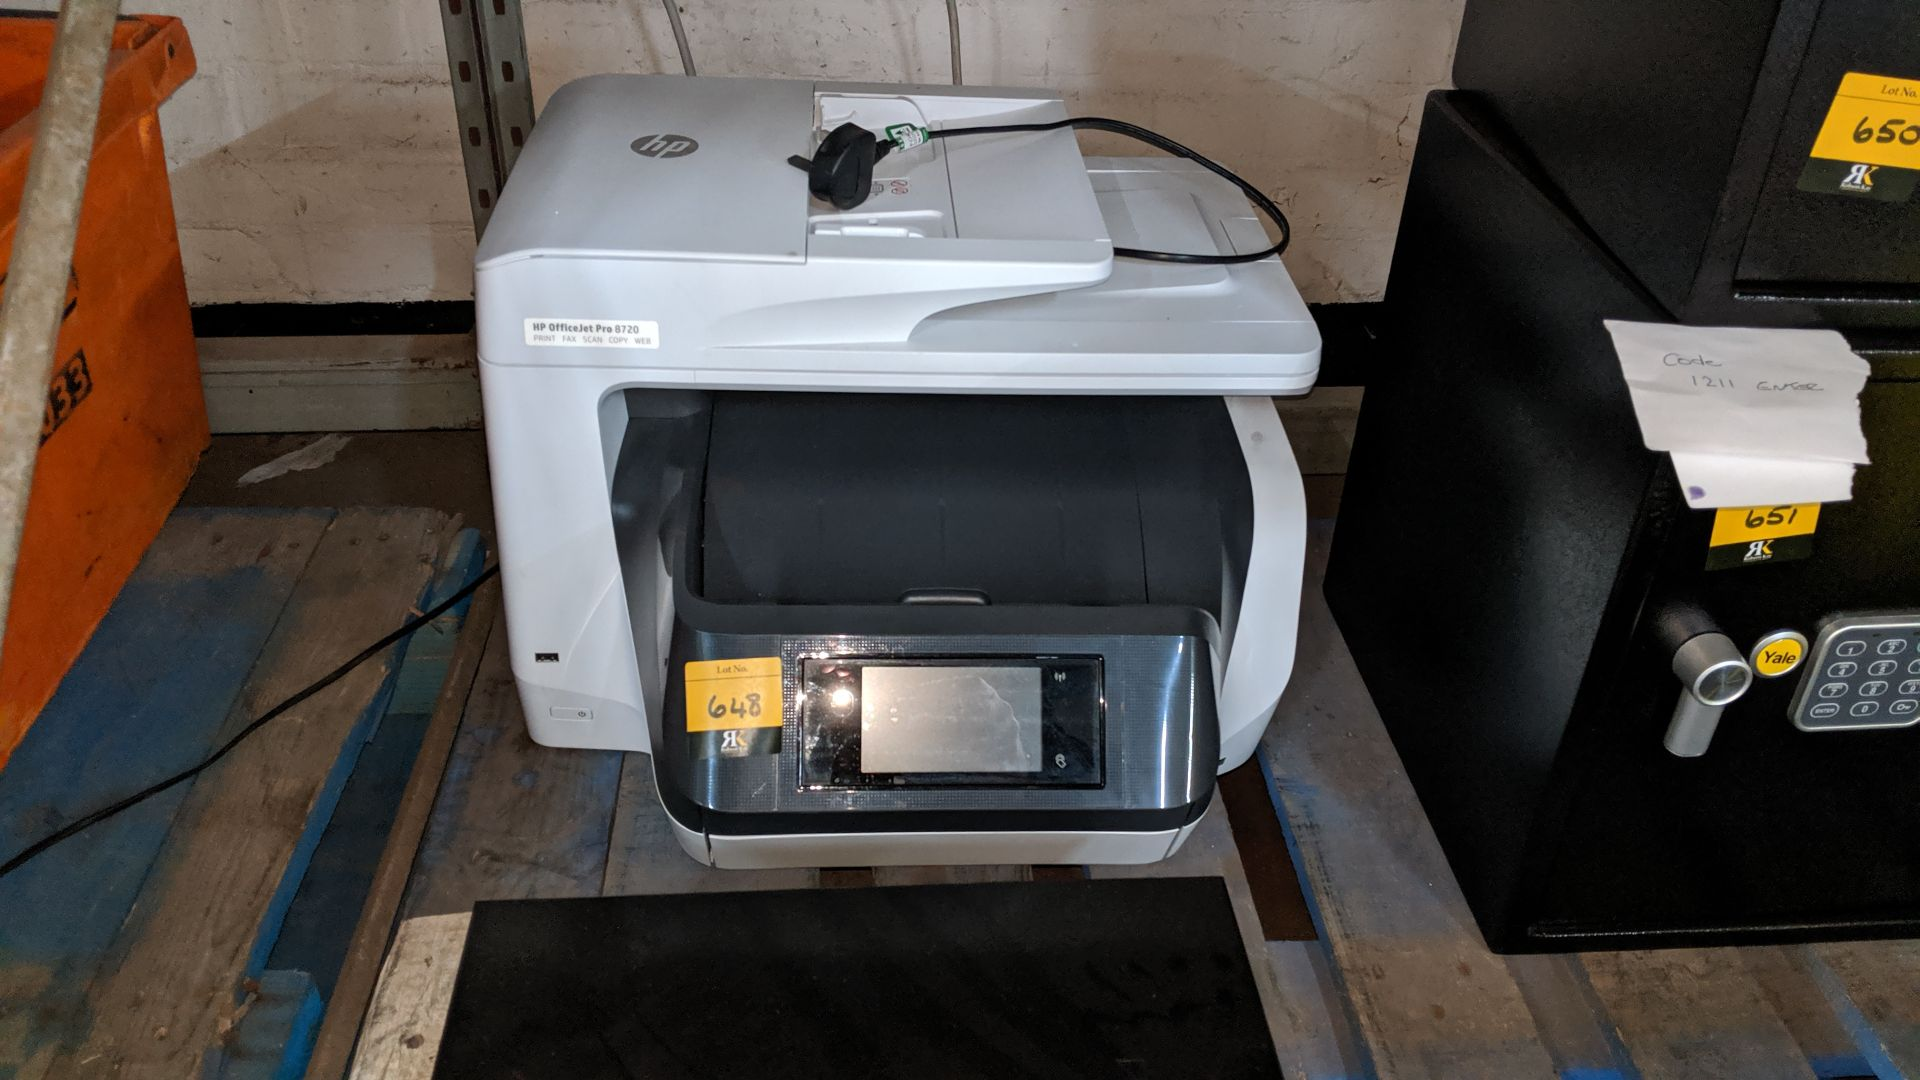 Lot 648 - HP OfficeJet Pro 8720 multifunction printer. This is one of a large number of lots used/owned by One